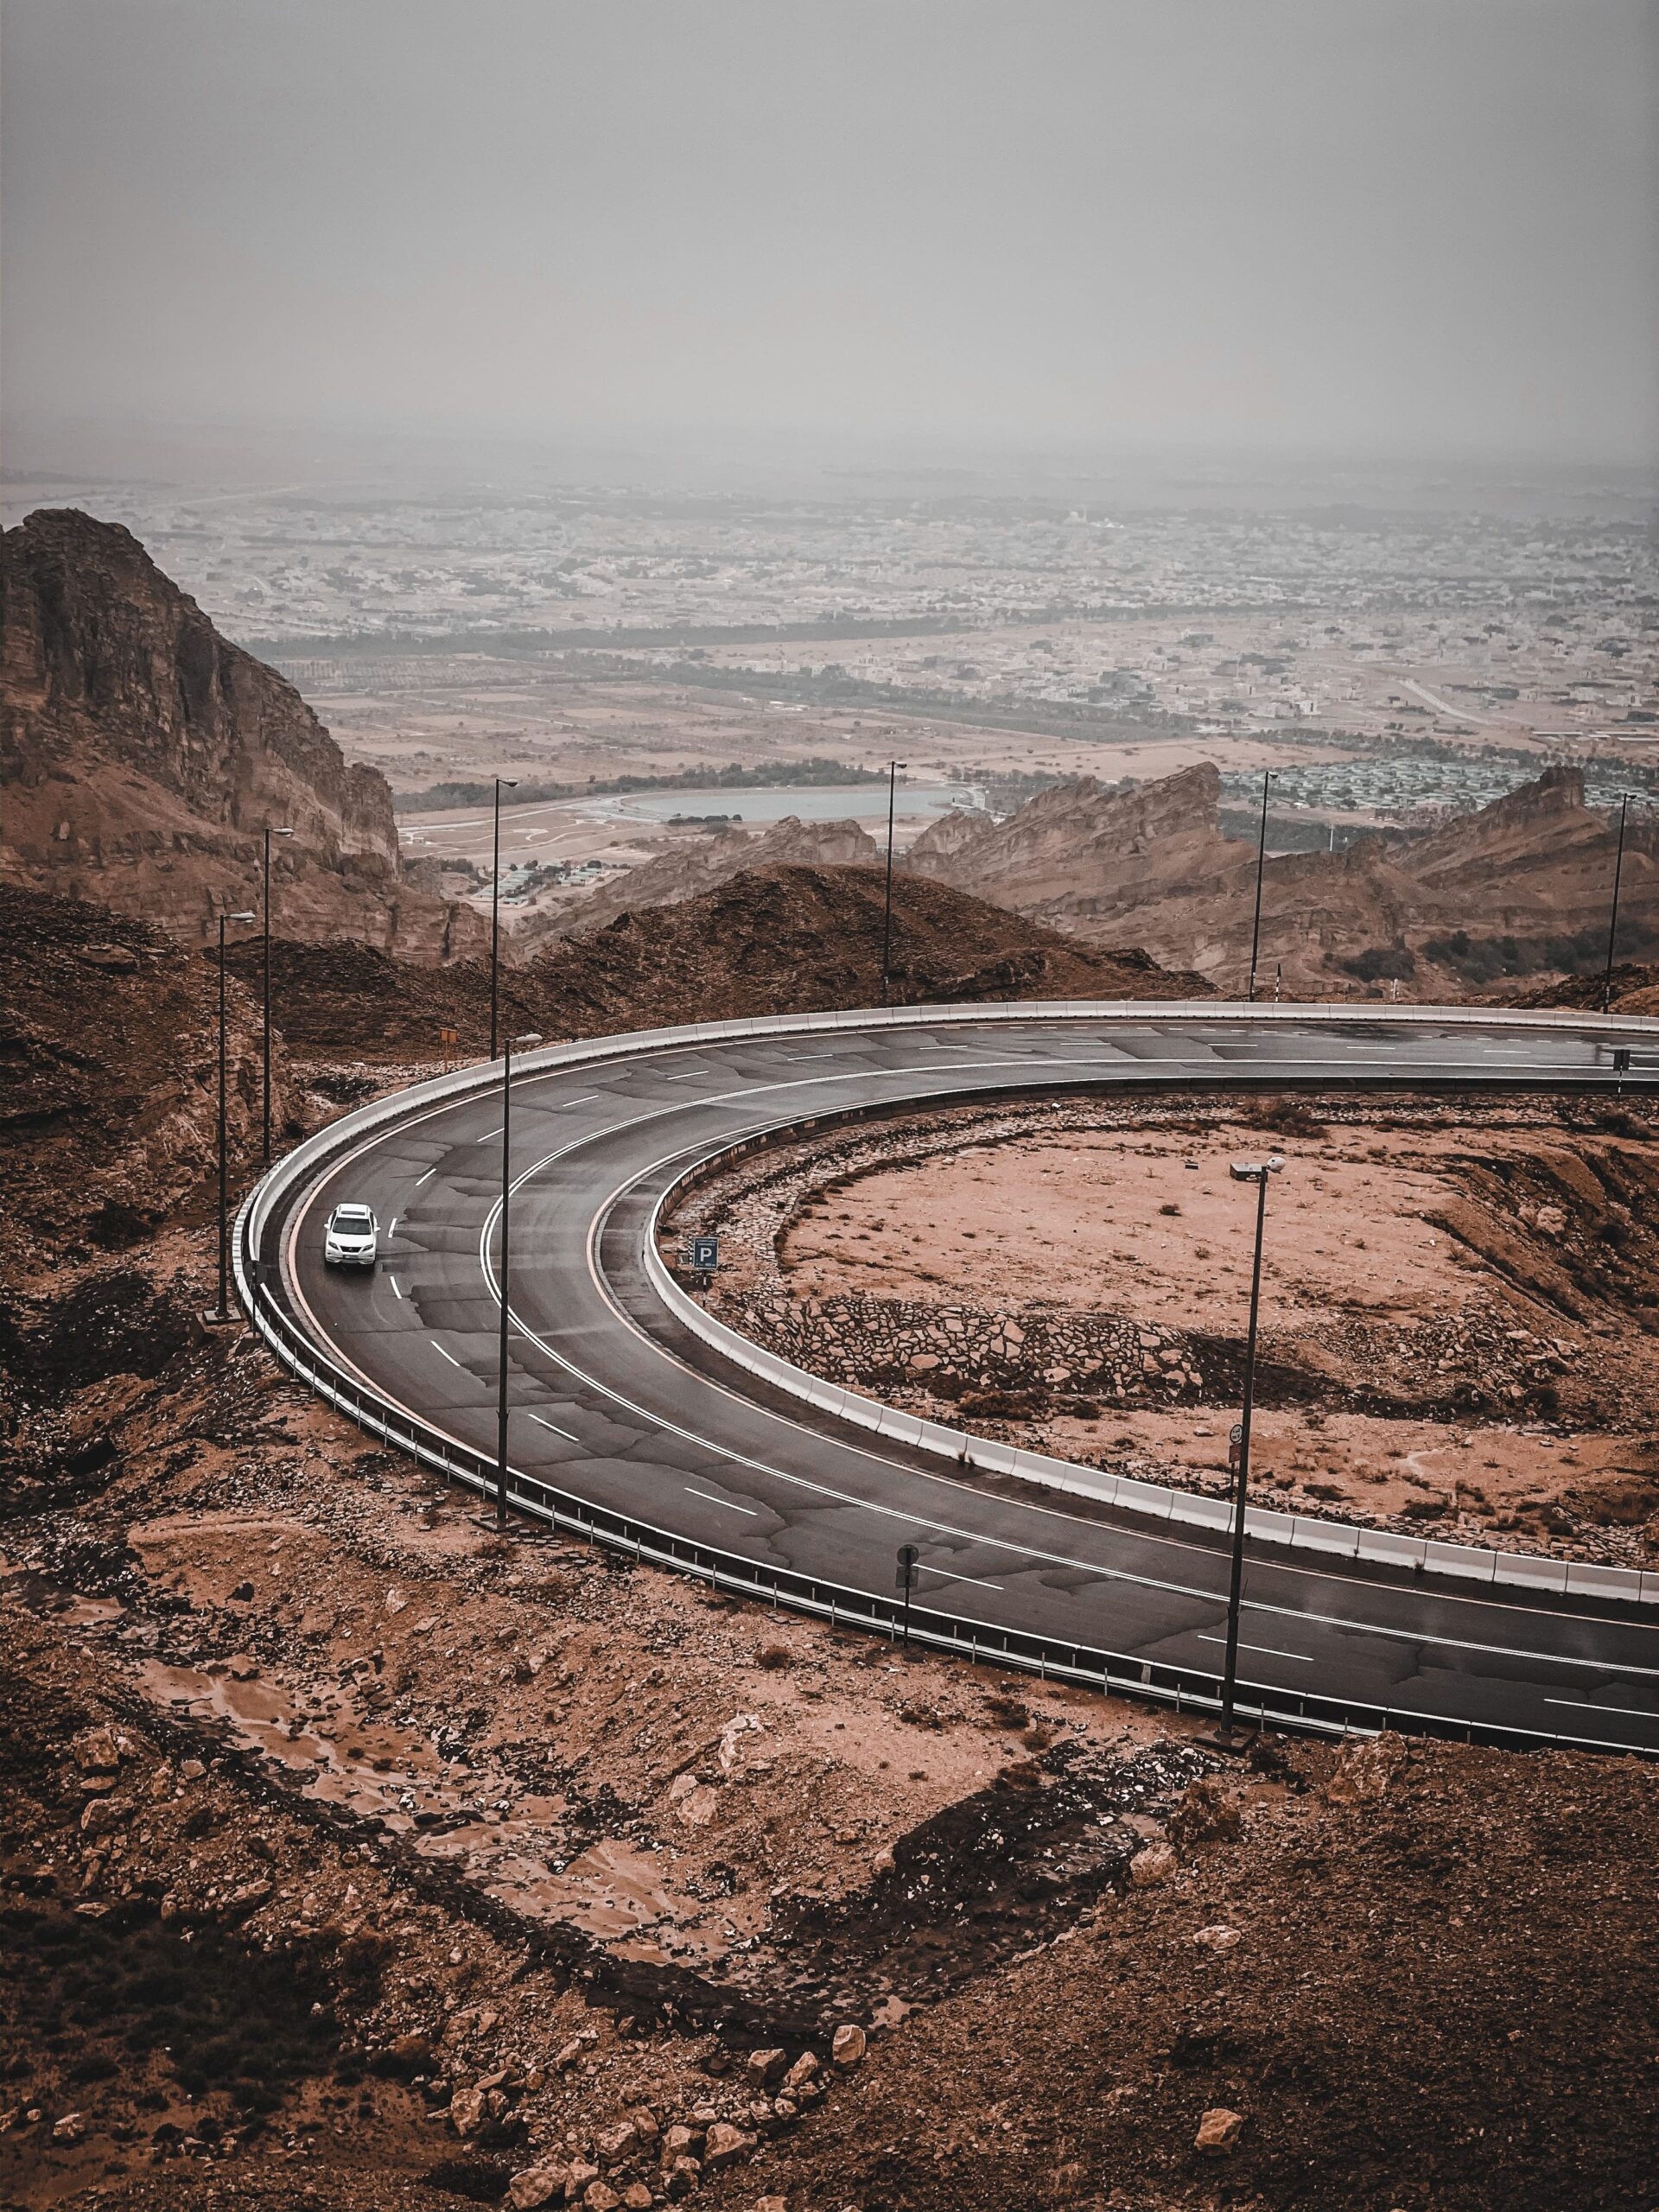 Curve Road on Jebal Hafeet Al Ain with an overview of the town in front